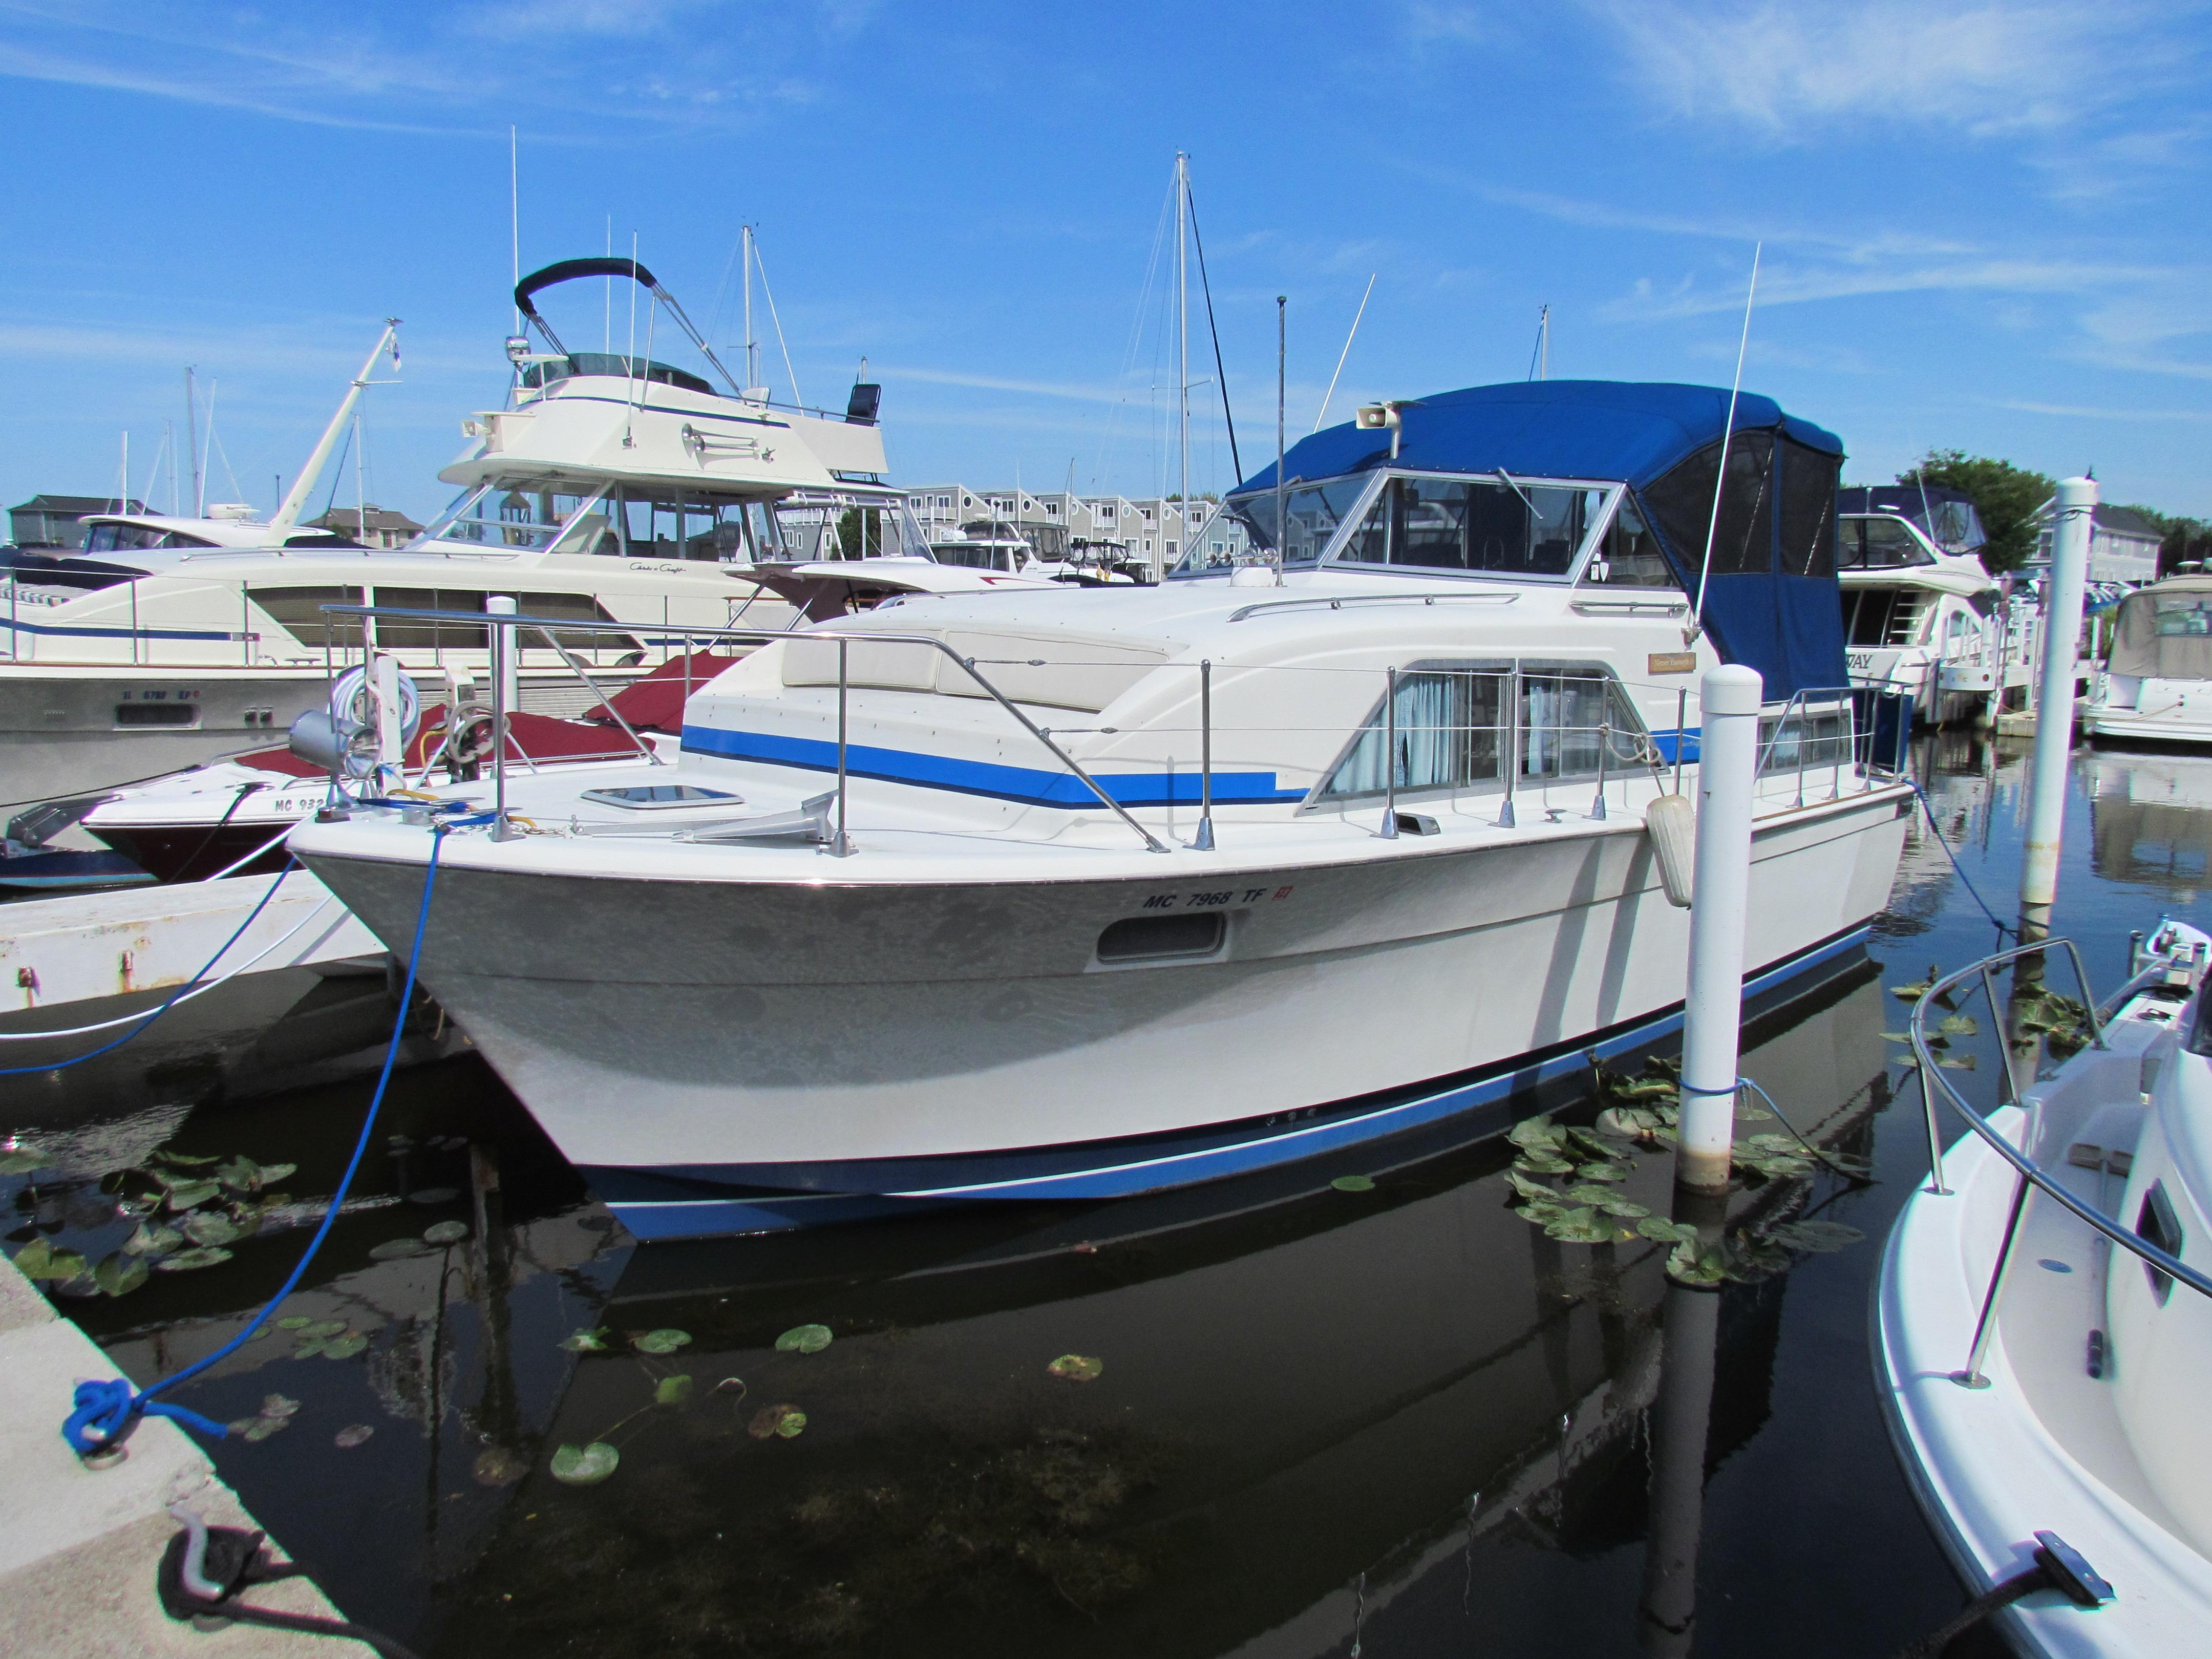 5383357_20150915114500834_1_XLARGE&w=4320&h=3240&t=1442346874000 chris craft 350 catalina boats for sale yachtworld Chris Craft Marine Engines at n-0.co